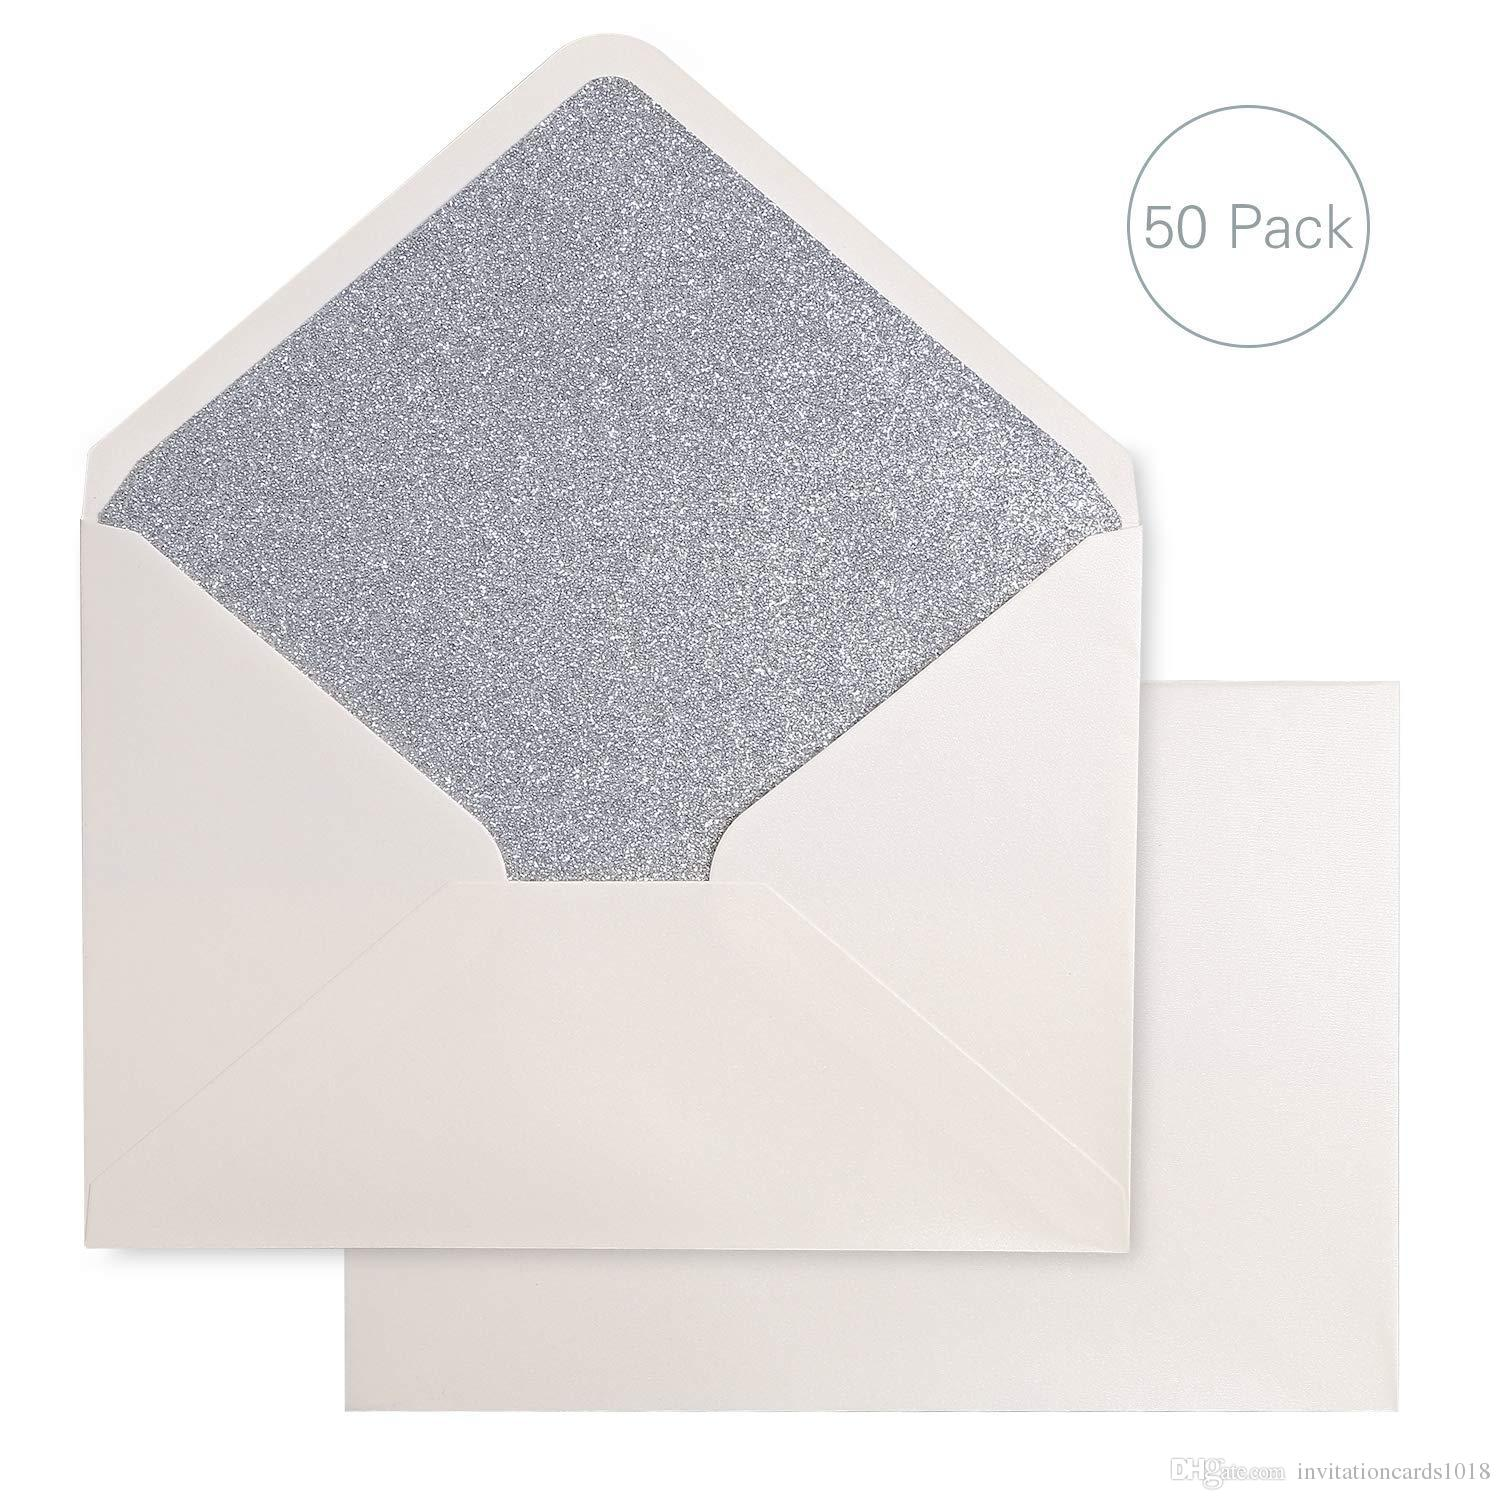 a7 silver glitter envelopes 5 25 x 7 5 inches with adhesive self